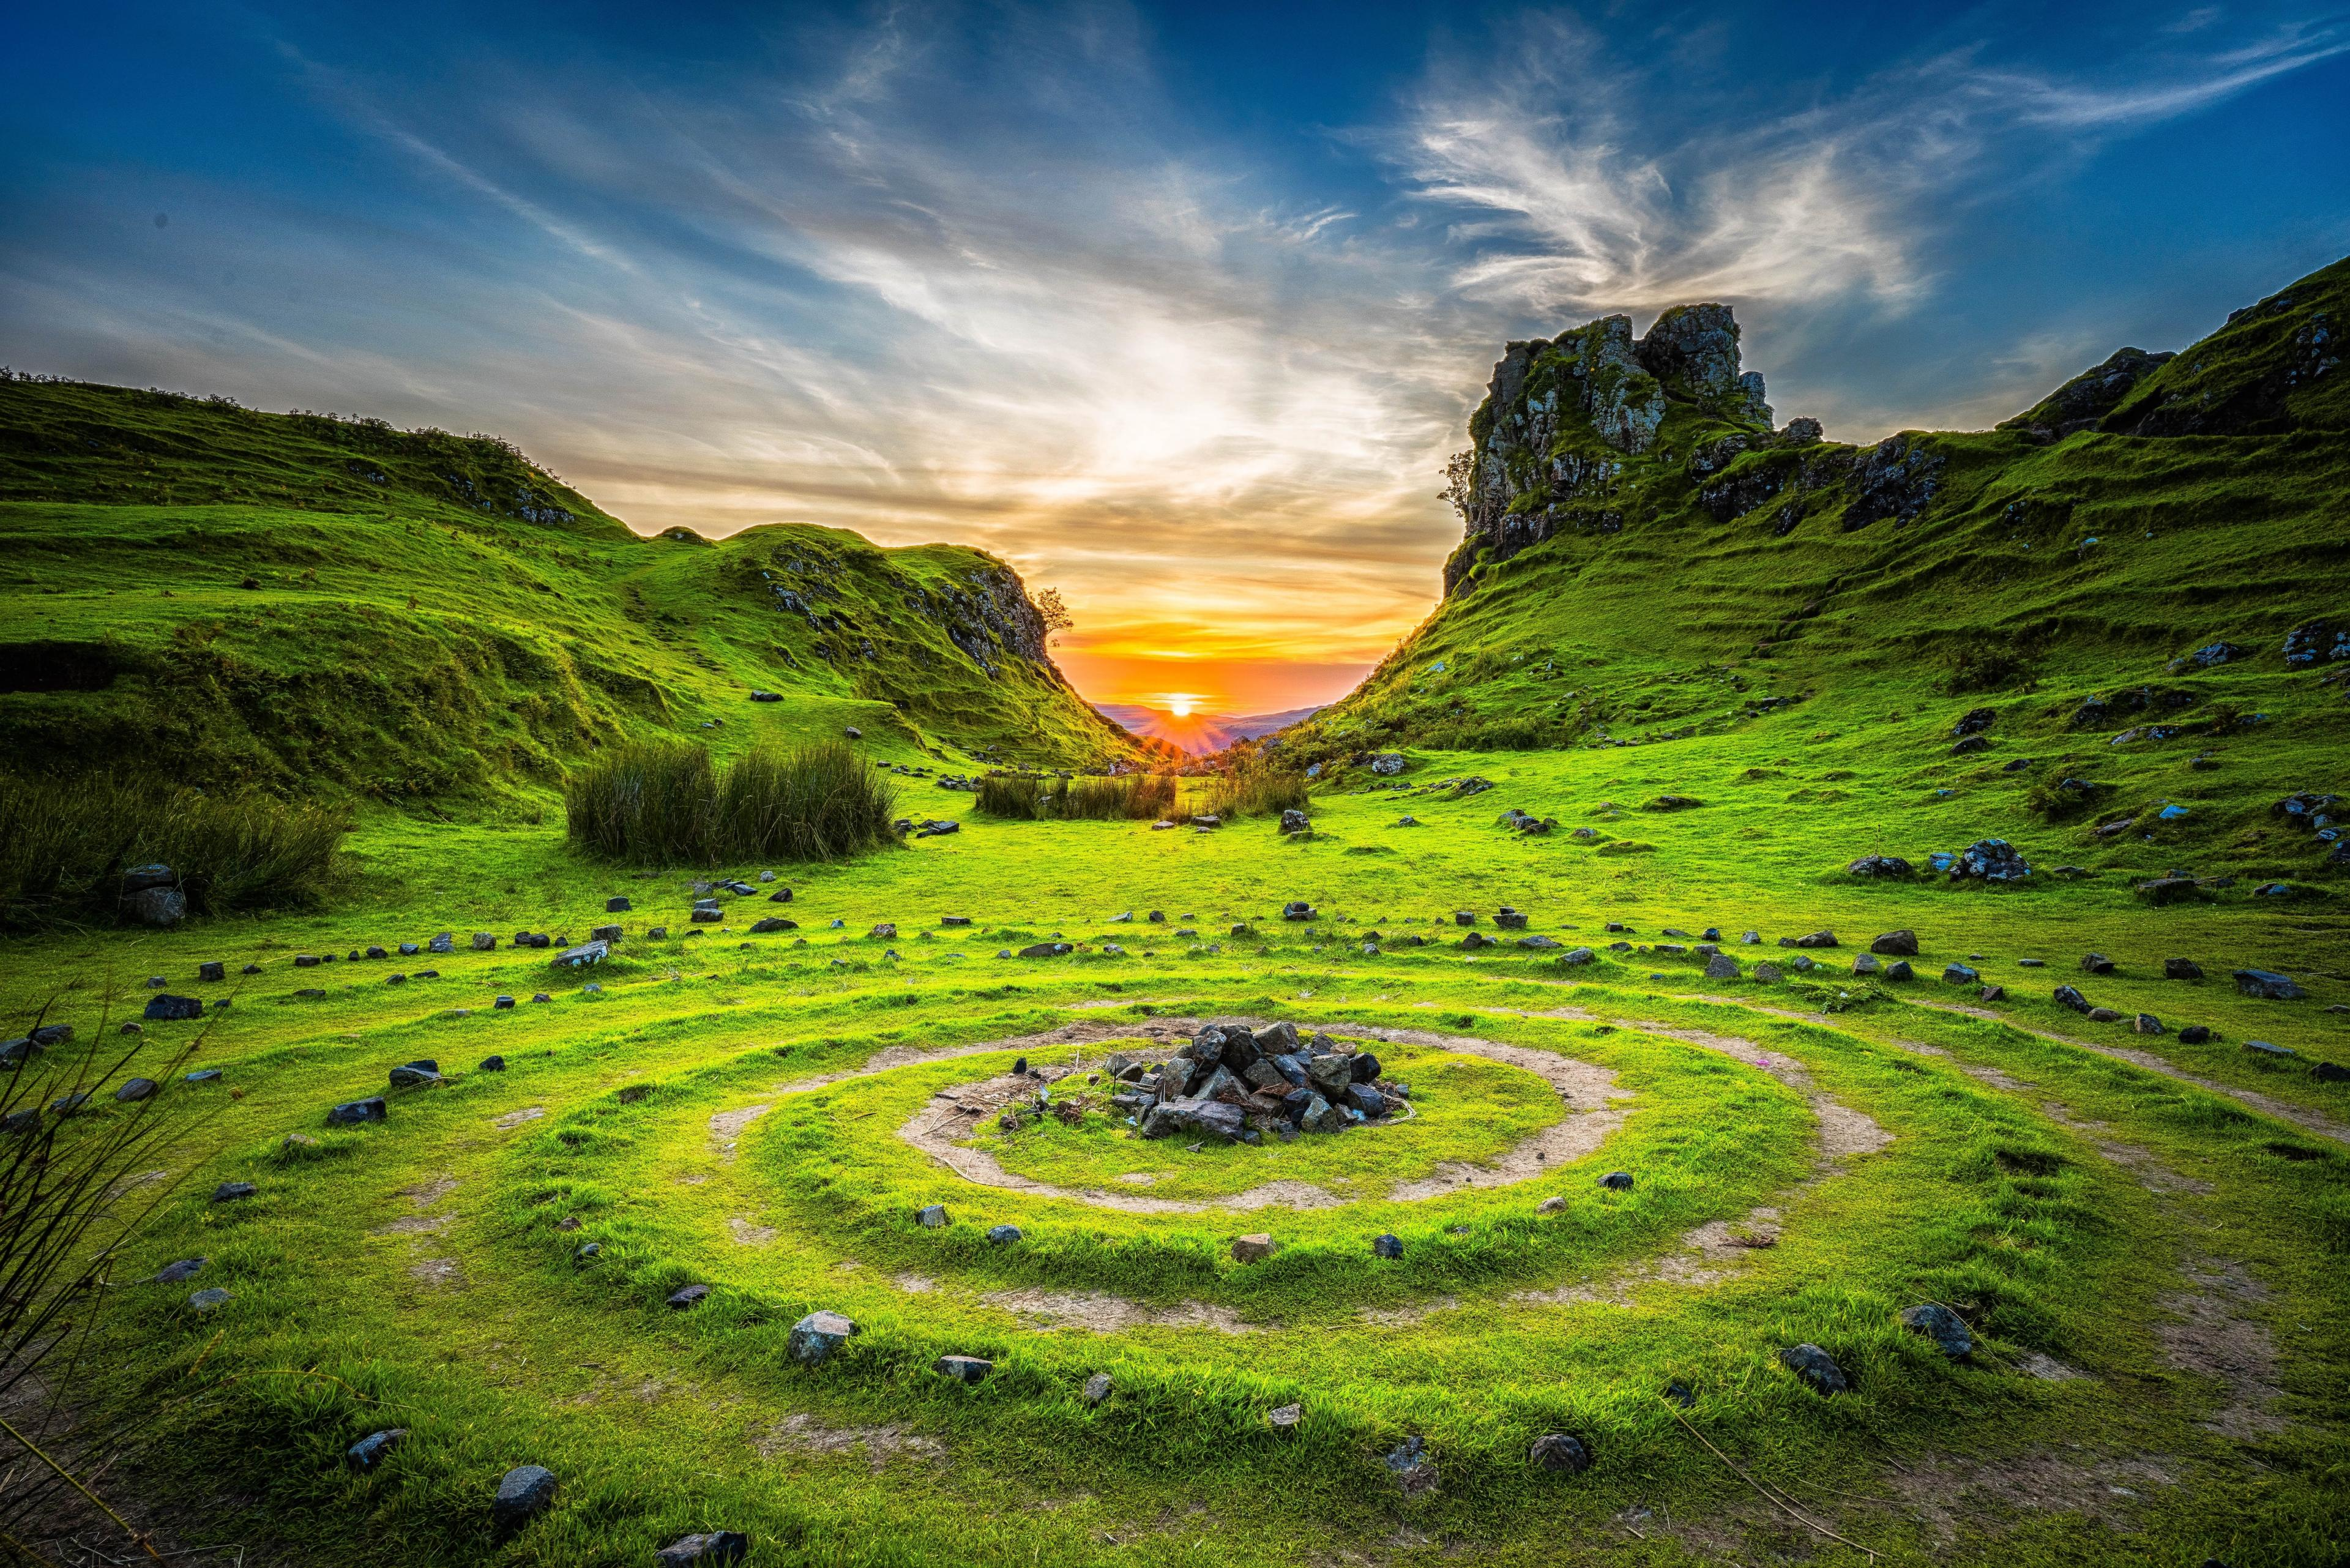 The sun rises between two green hills. In the foreground, circles of stone and earth radiate outward from a stone center.